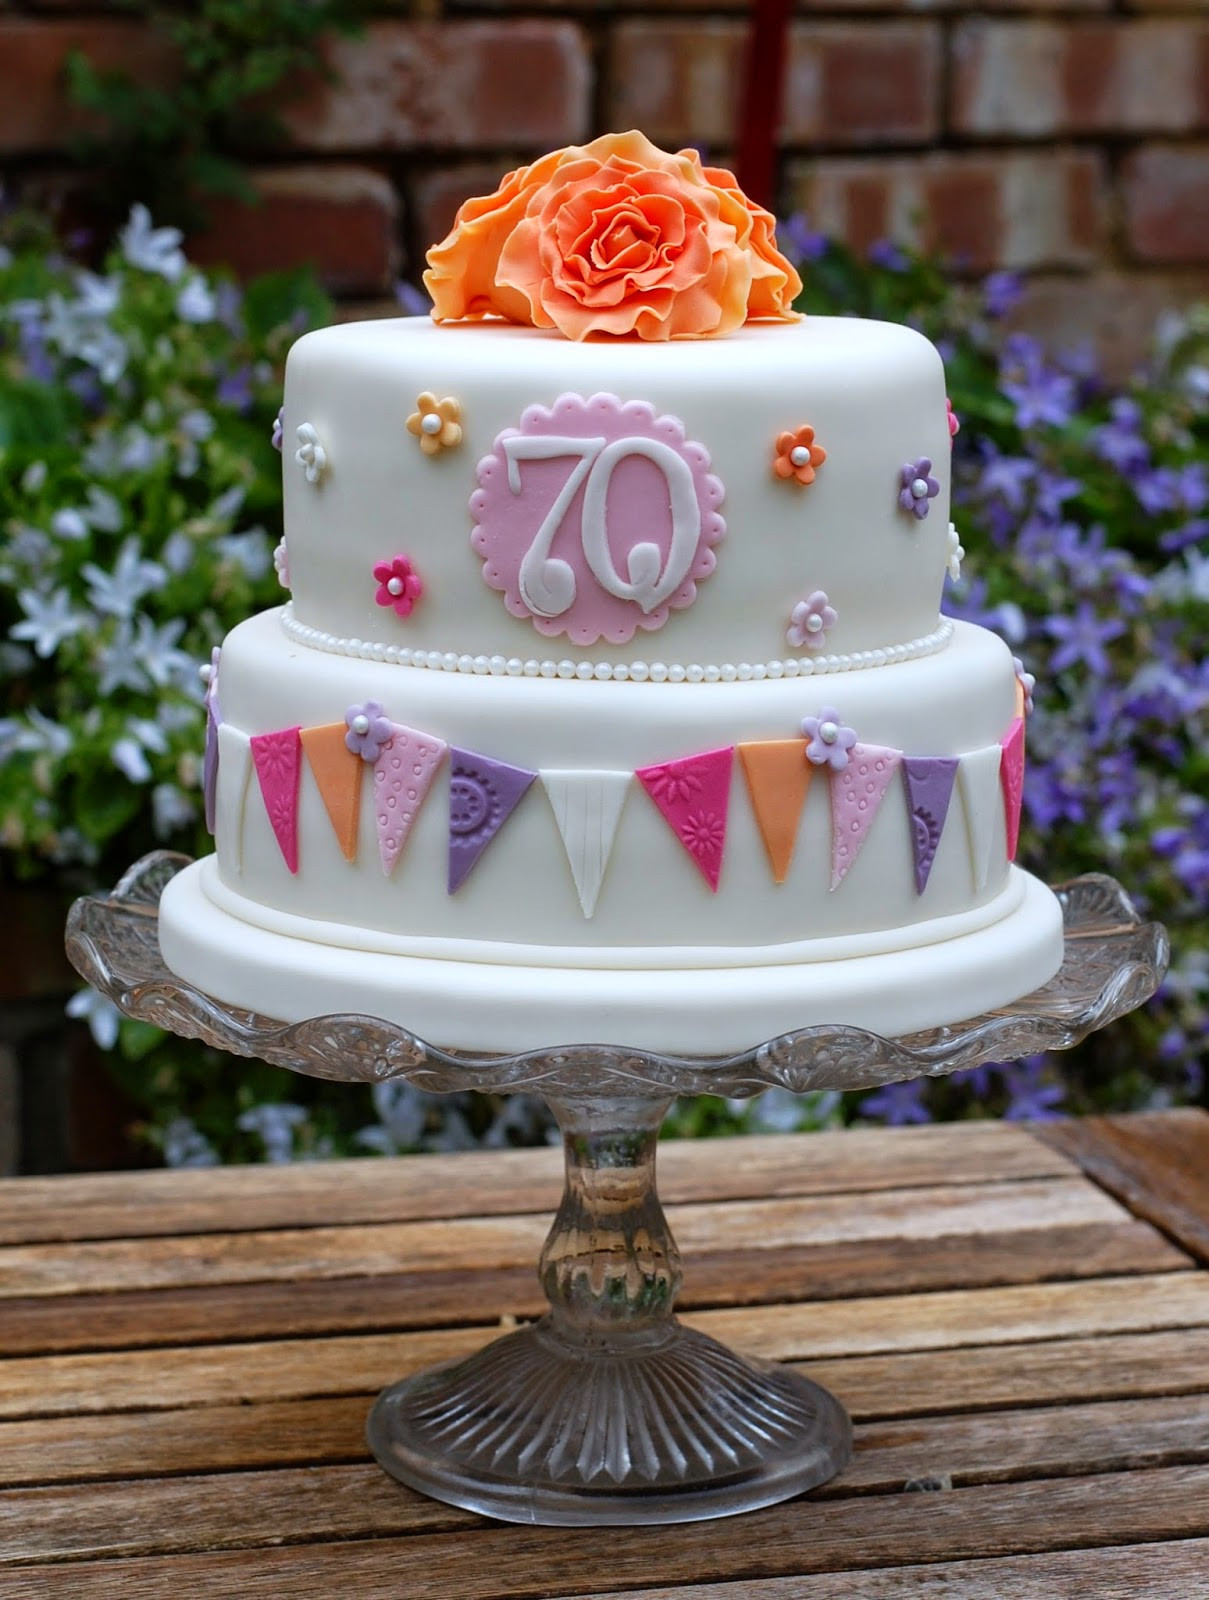 Best ideas about 70th Birthday Cake Ideas . Save or Pin Vanilla Frost Pretty 70th Birthday Cakes Now.